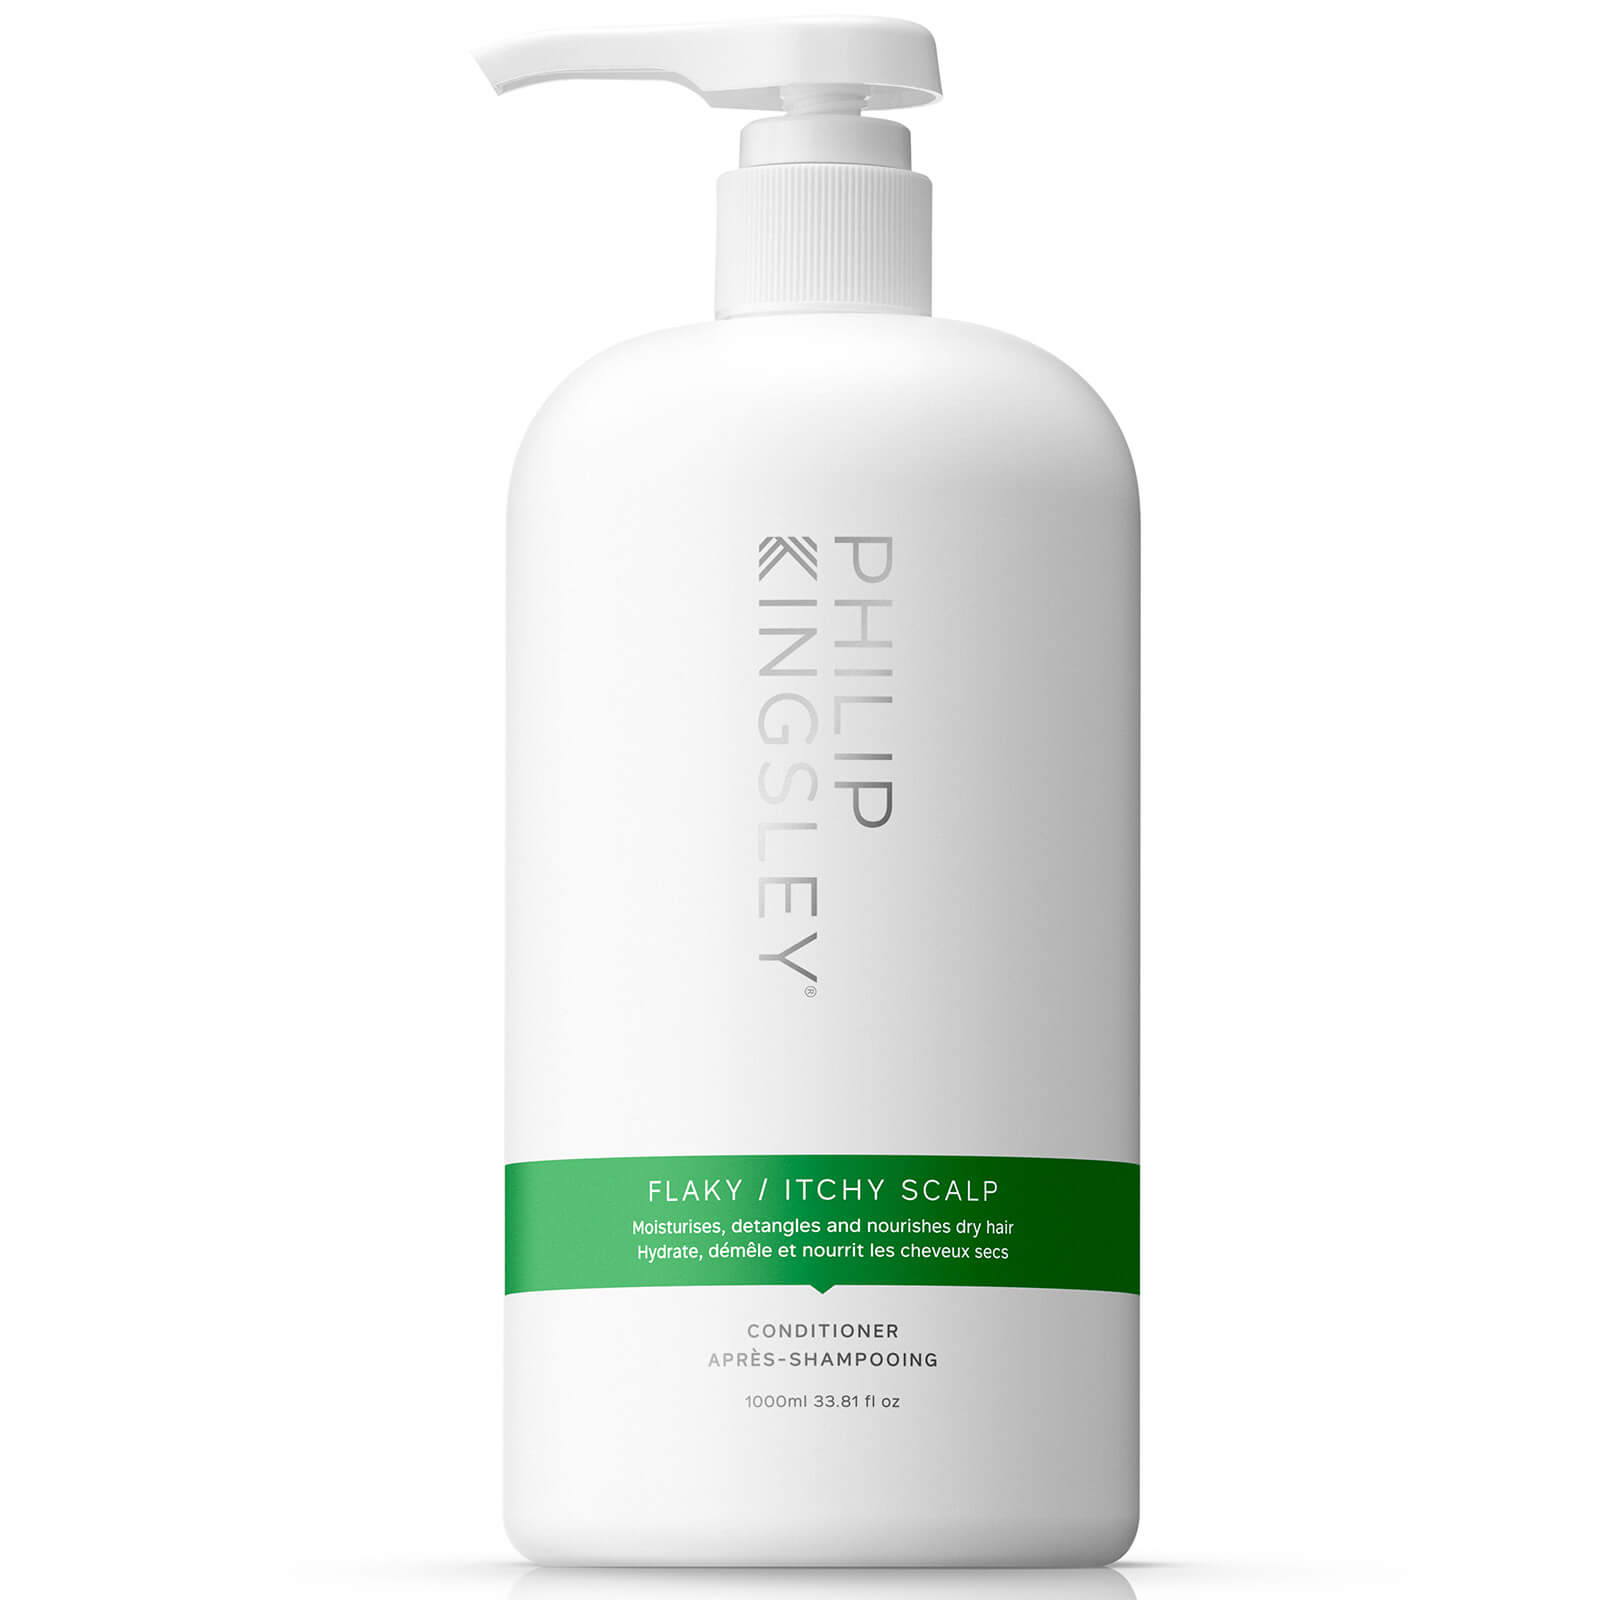 Philip Kingsley FLAKY/ITCHY SCALP CONDITIONER 1000ML